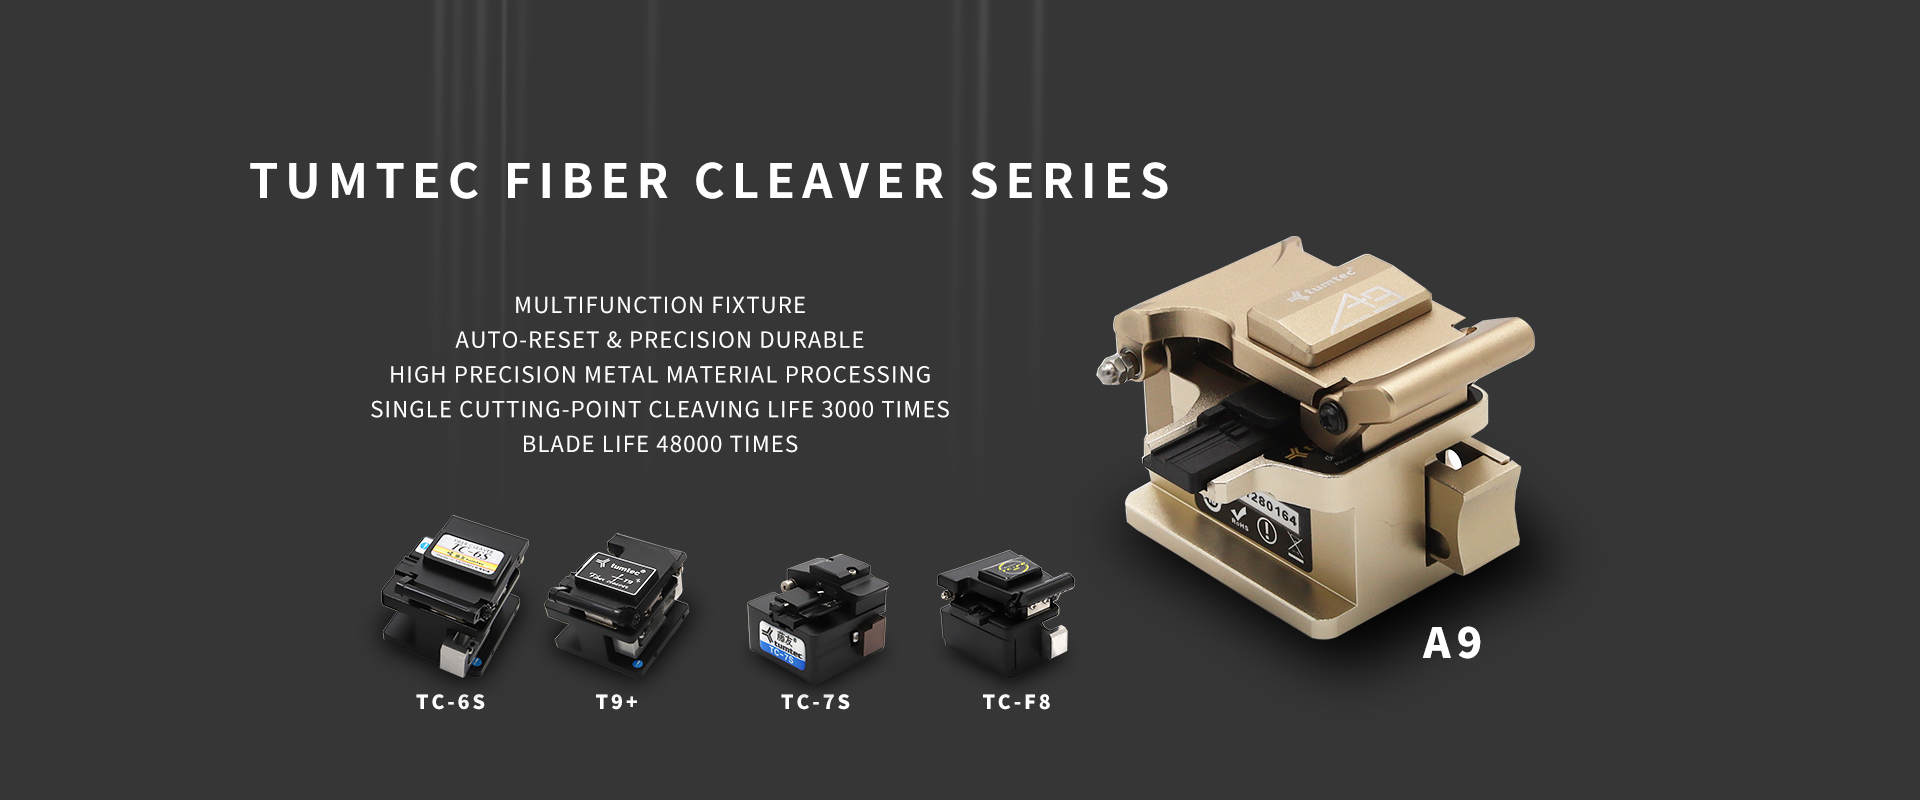 Tumtec optical fiber cleaver